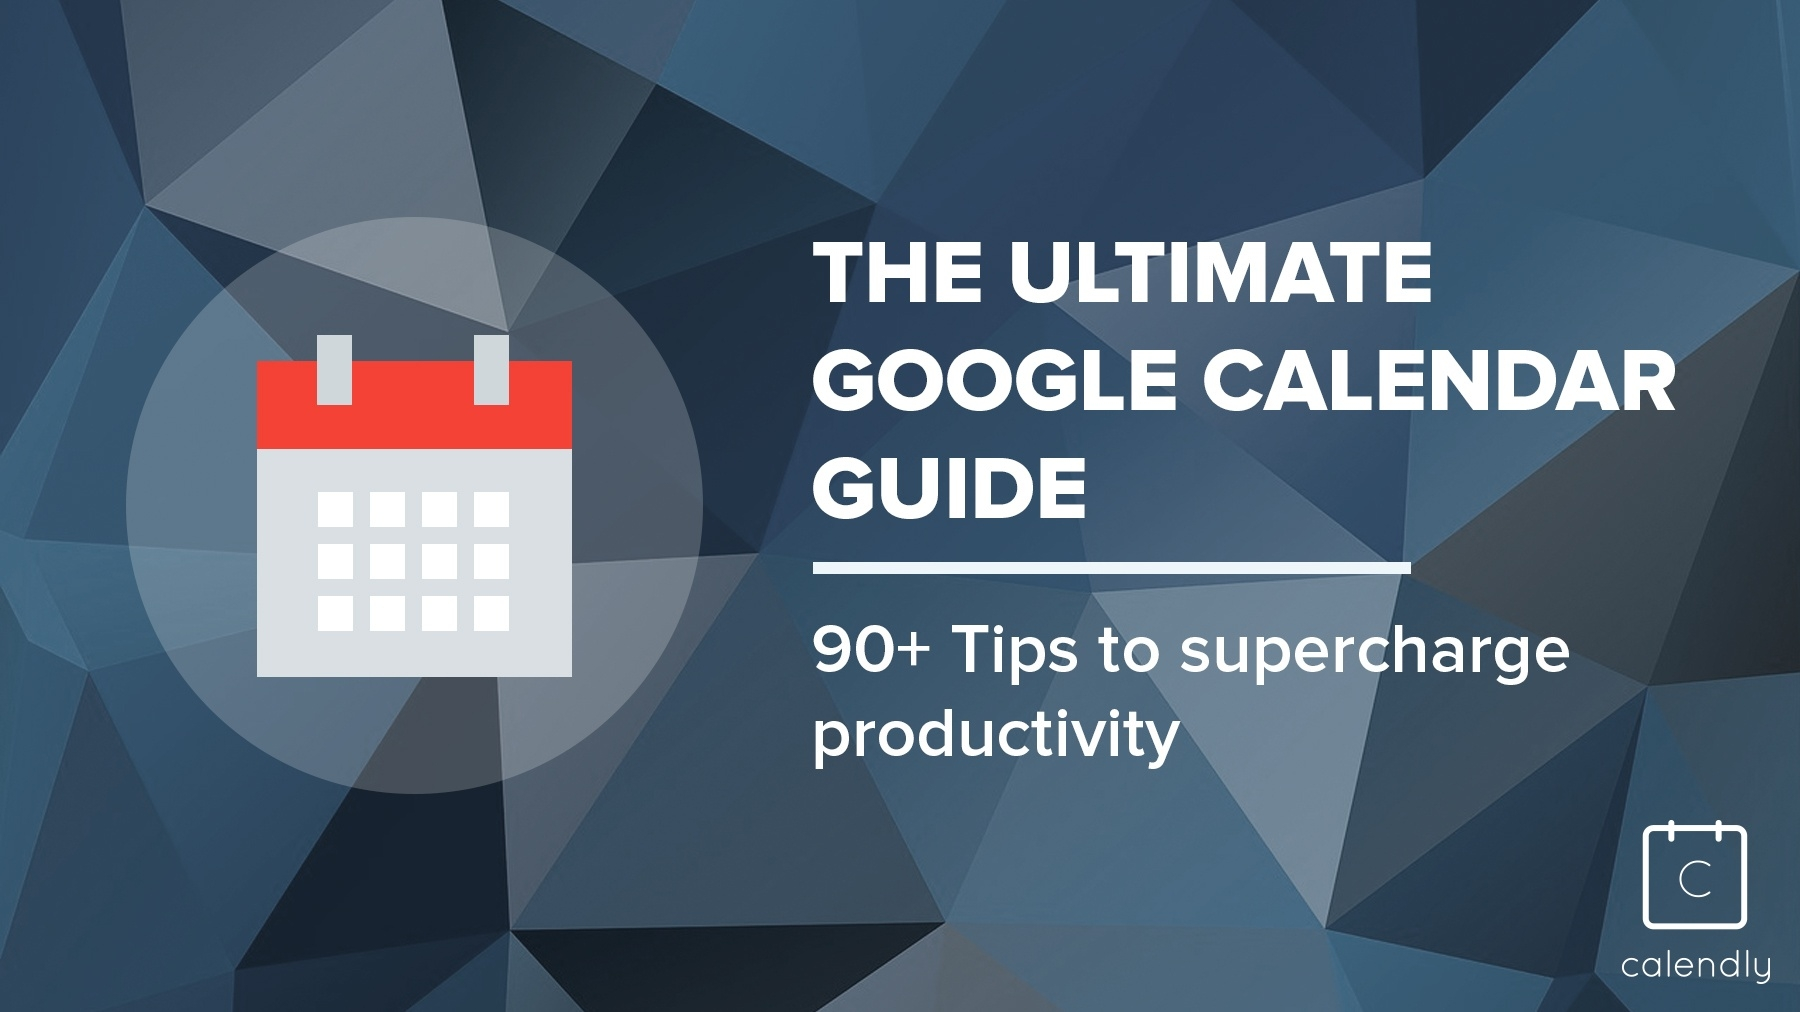 Blog - The Ultimate Google Calendar Guide: 90+ Tips_My Calendar Icon Has Disappeared